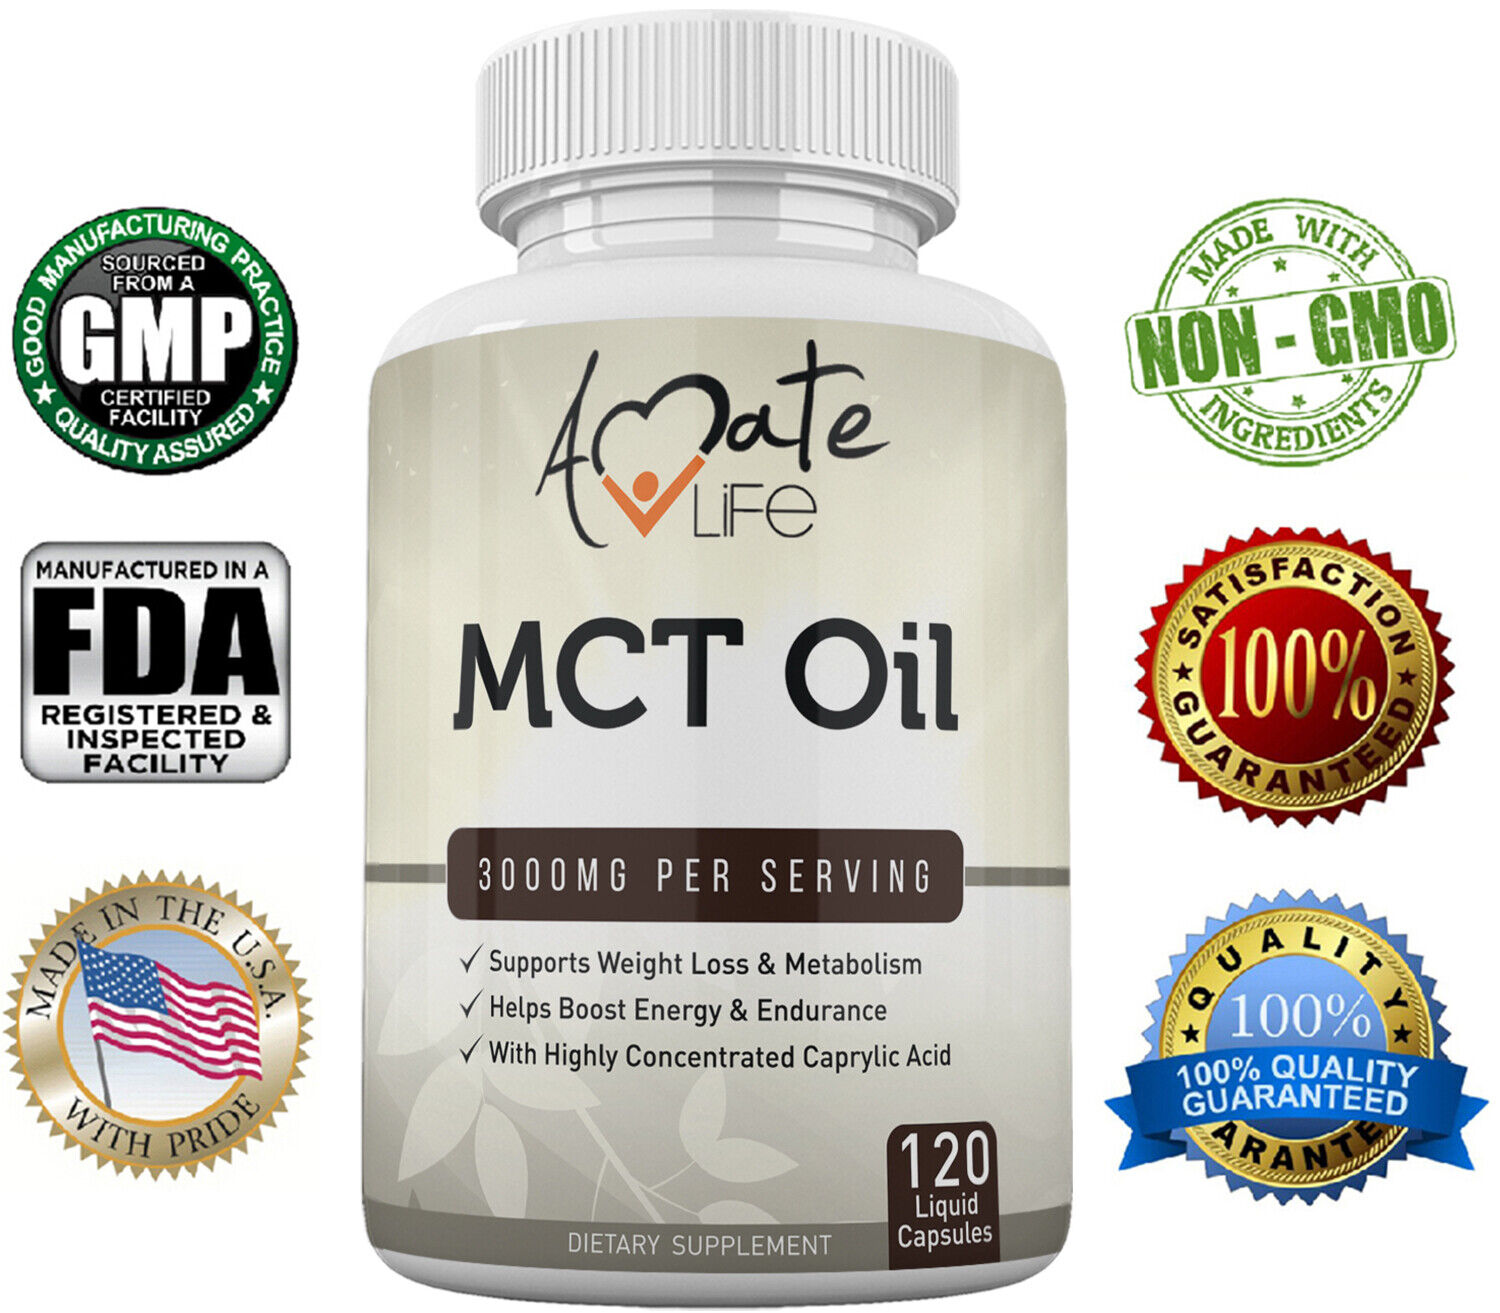 Amate Life 100% Pure MCT Oil Capsules 3000 mg - Metabolism &